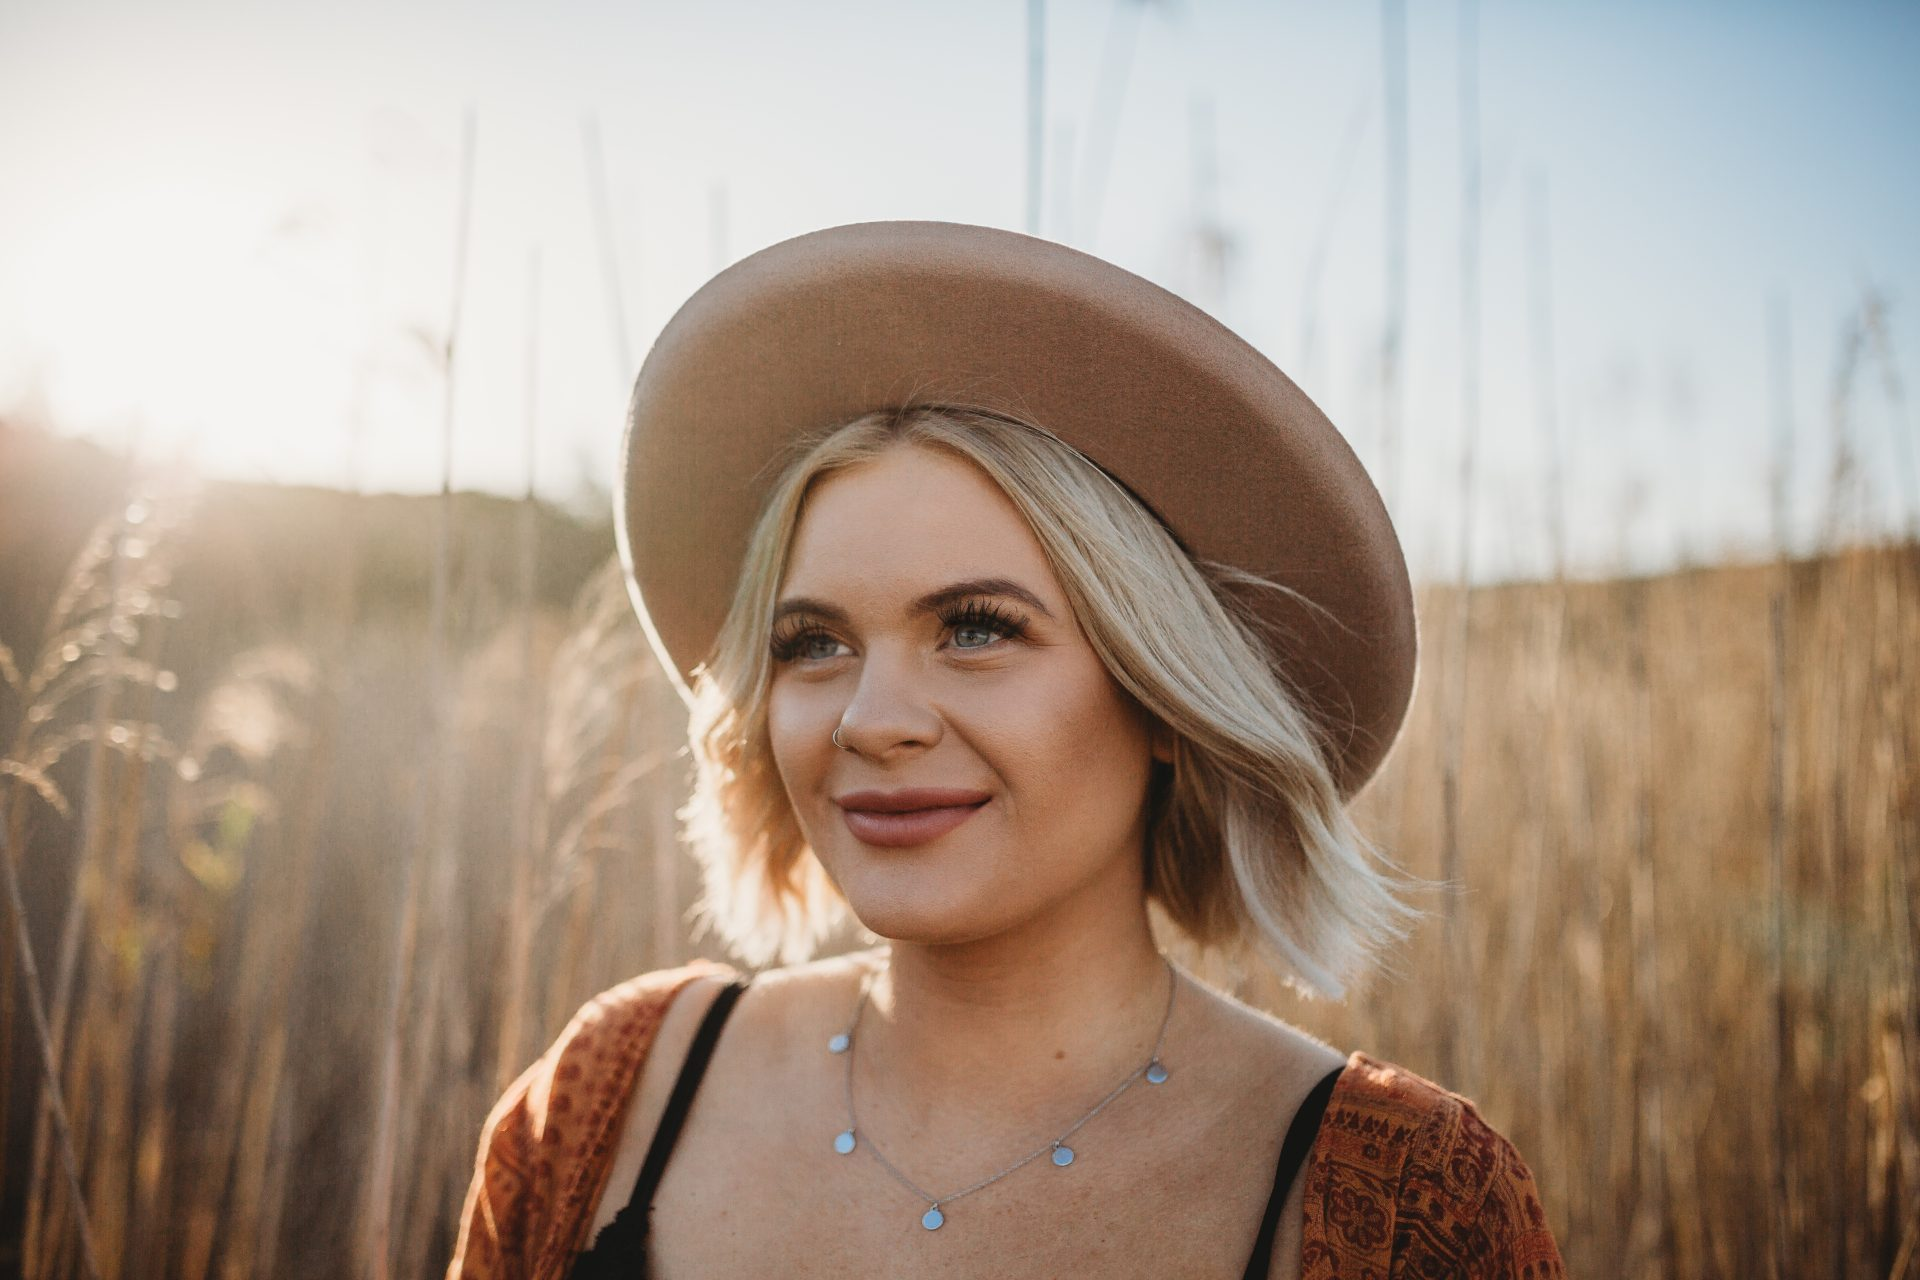 Blonde girl wearing Lack of Colour hat, looking off into the distance